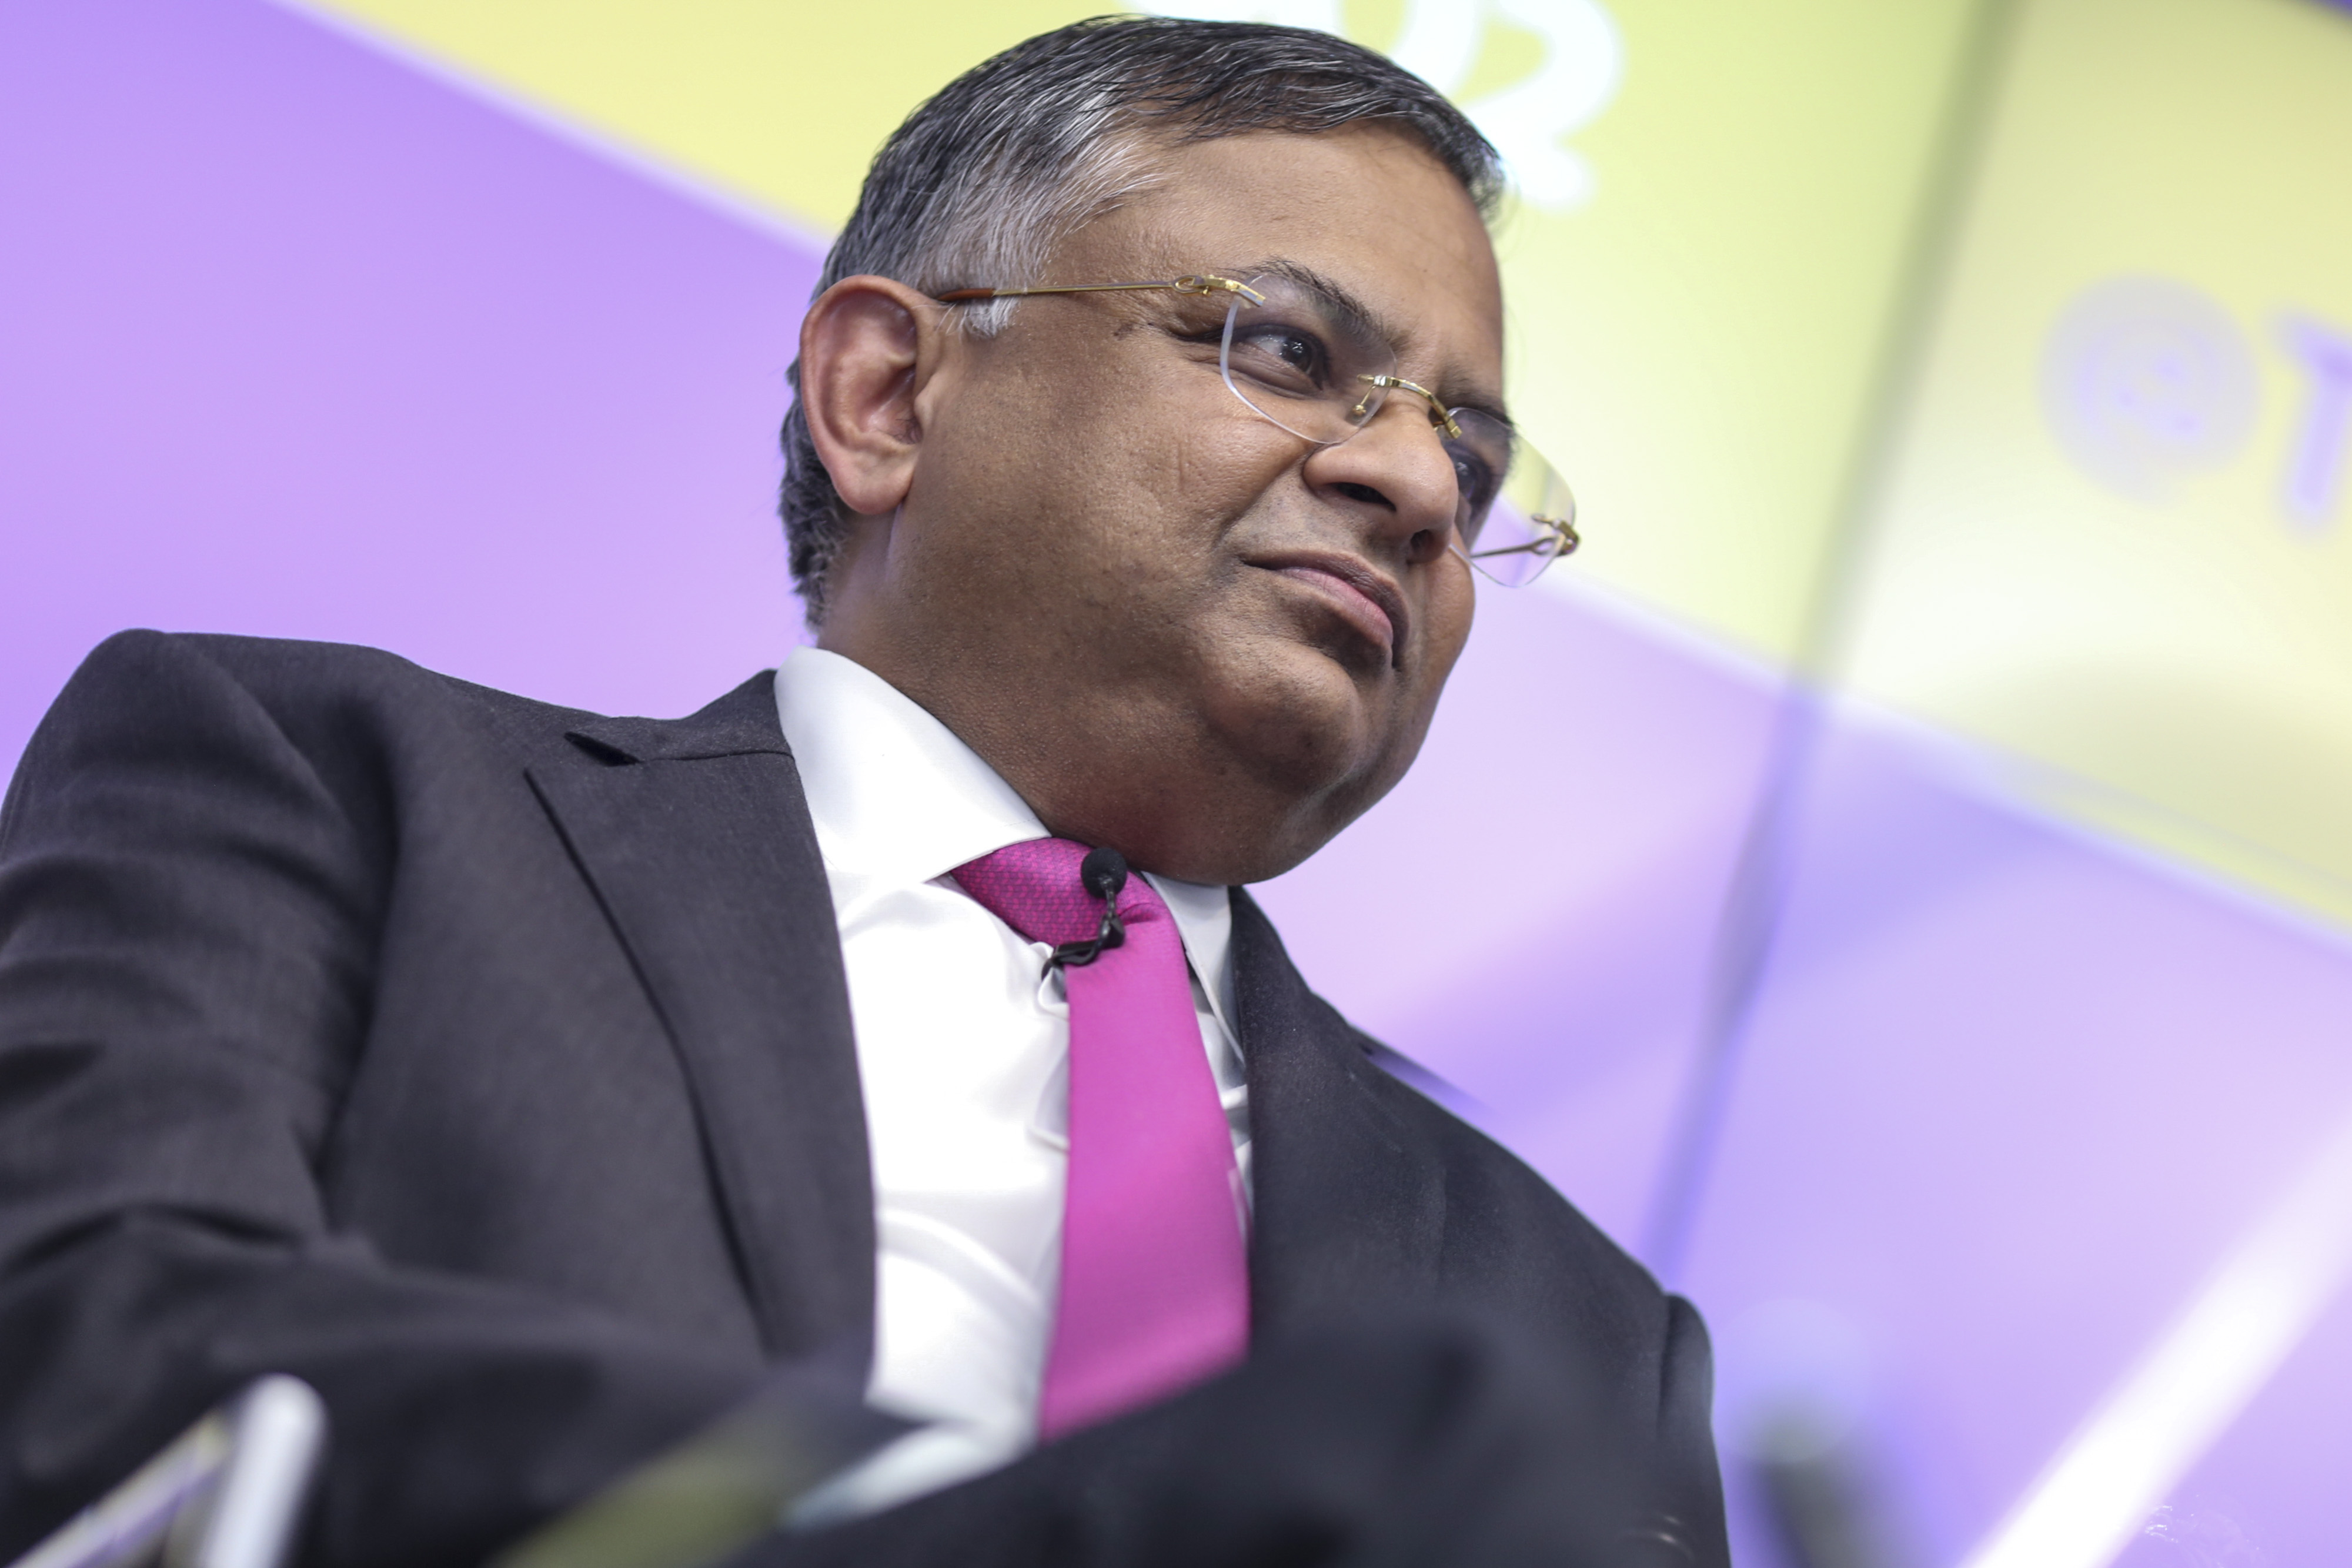 Tata Consultancy Services Ltd. Chief Executive Officer Natarajan Chandrasekaran Attends News Conference As Earns Released